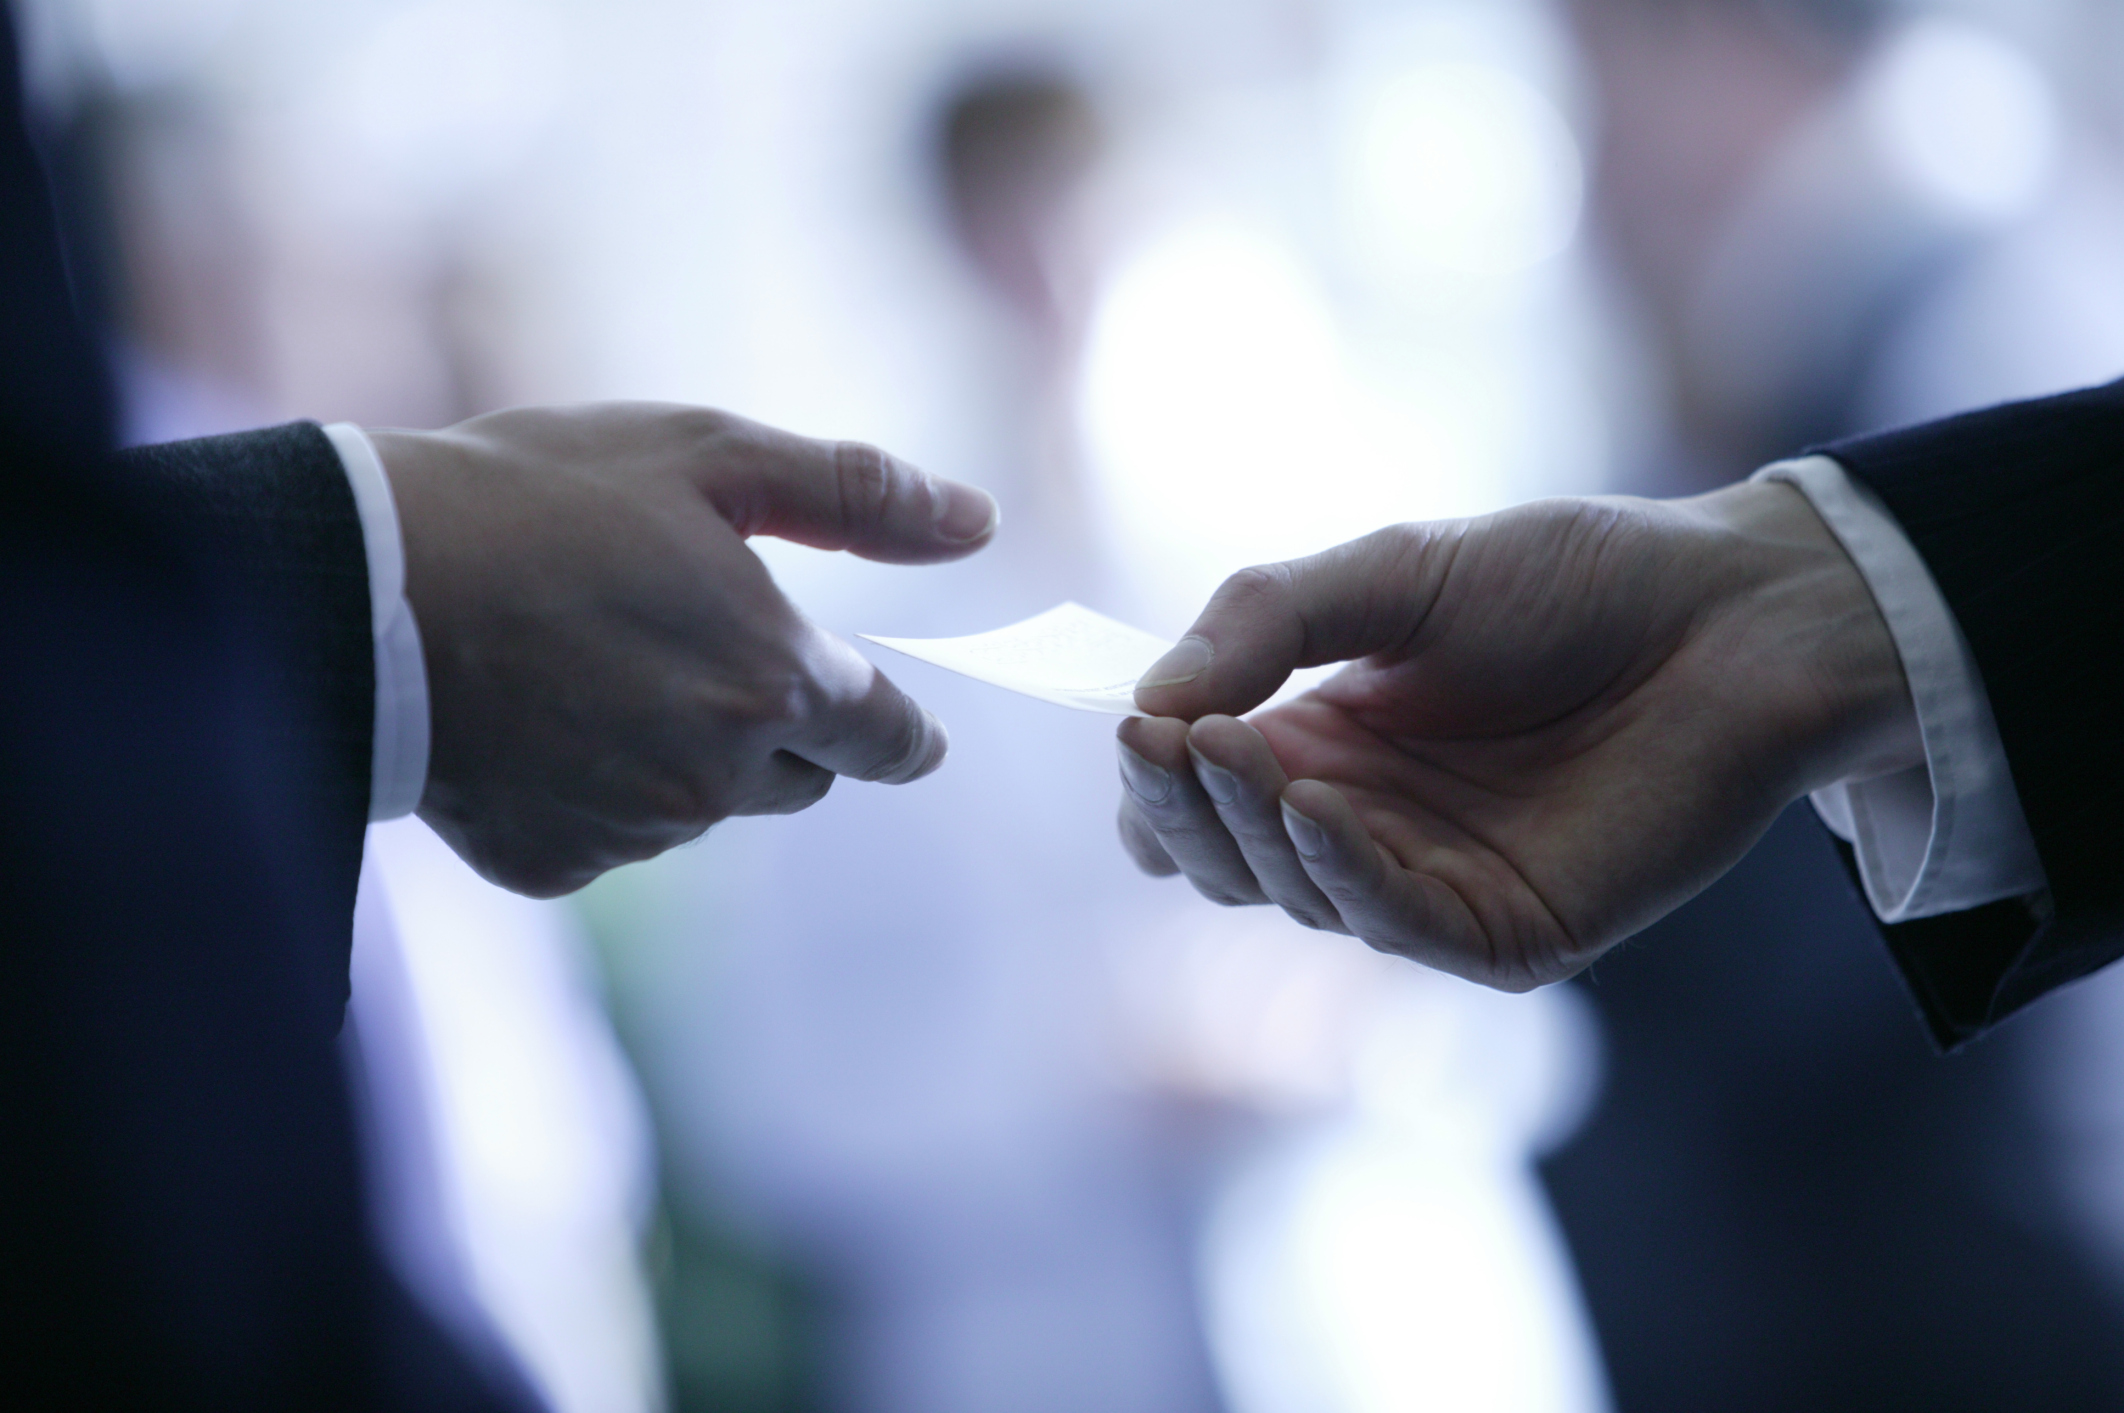 Business Card Etiquette 102 - House of Marbury